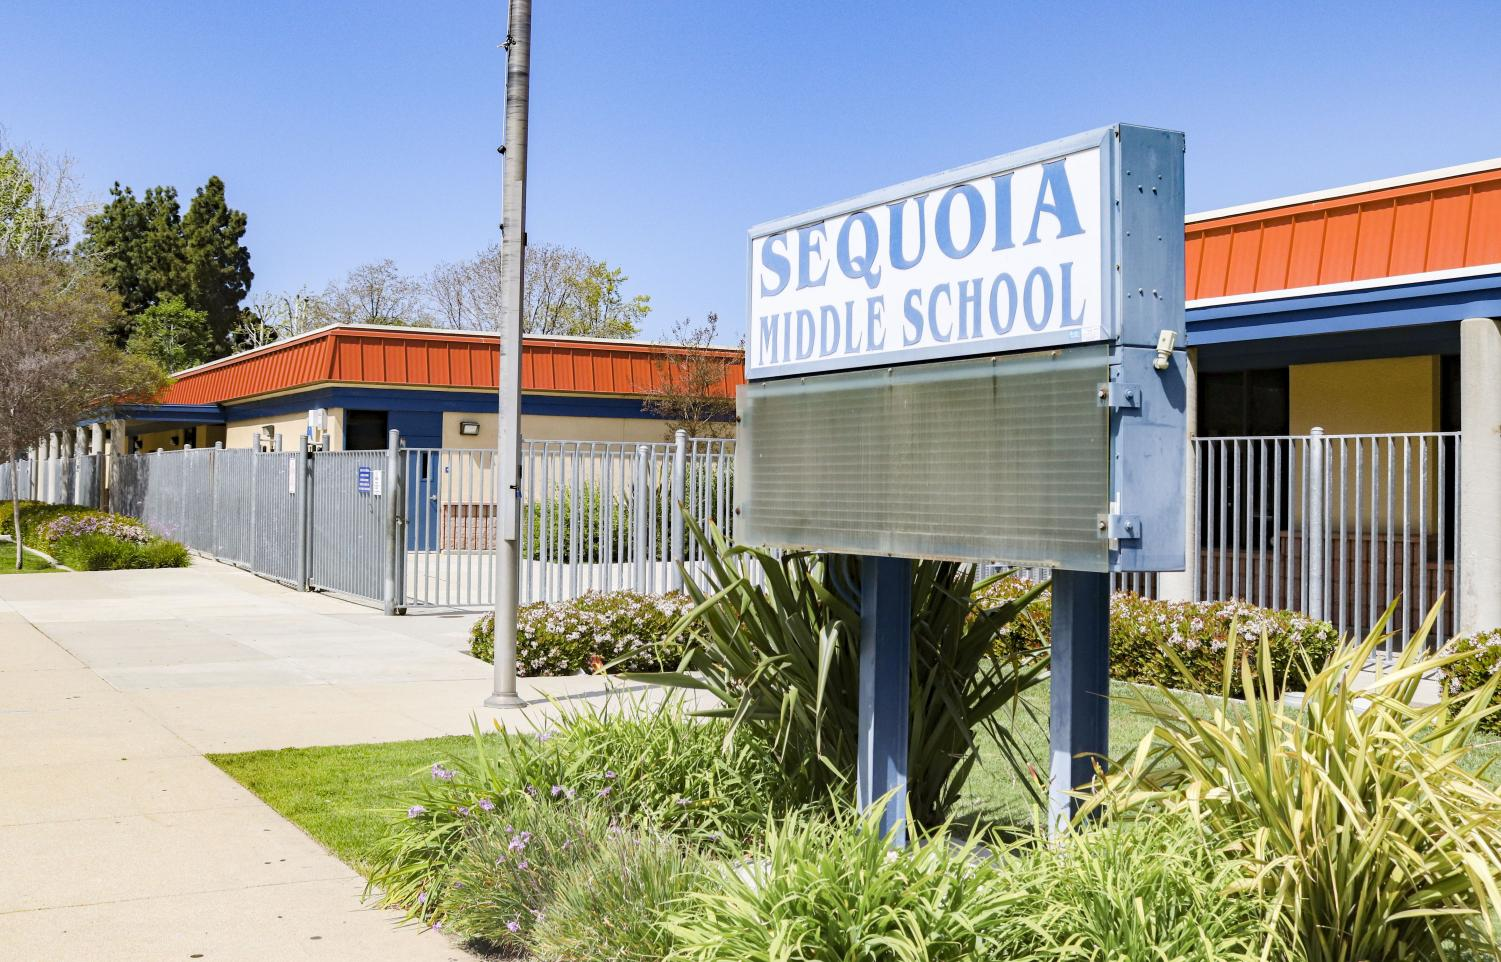 Sequoia Middle School in Newbury Park, Calif. closed on Friday, April 3, due to COVID-19 concerns in California.